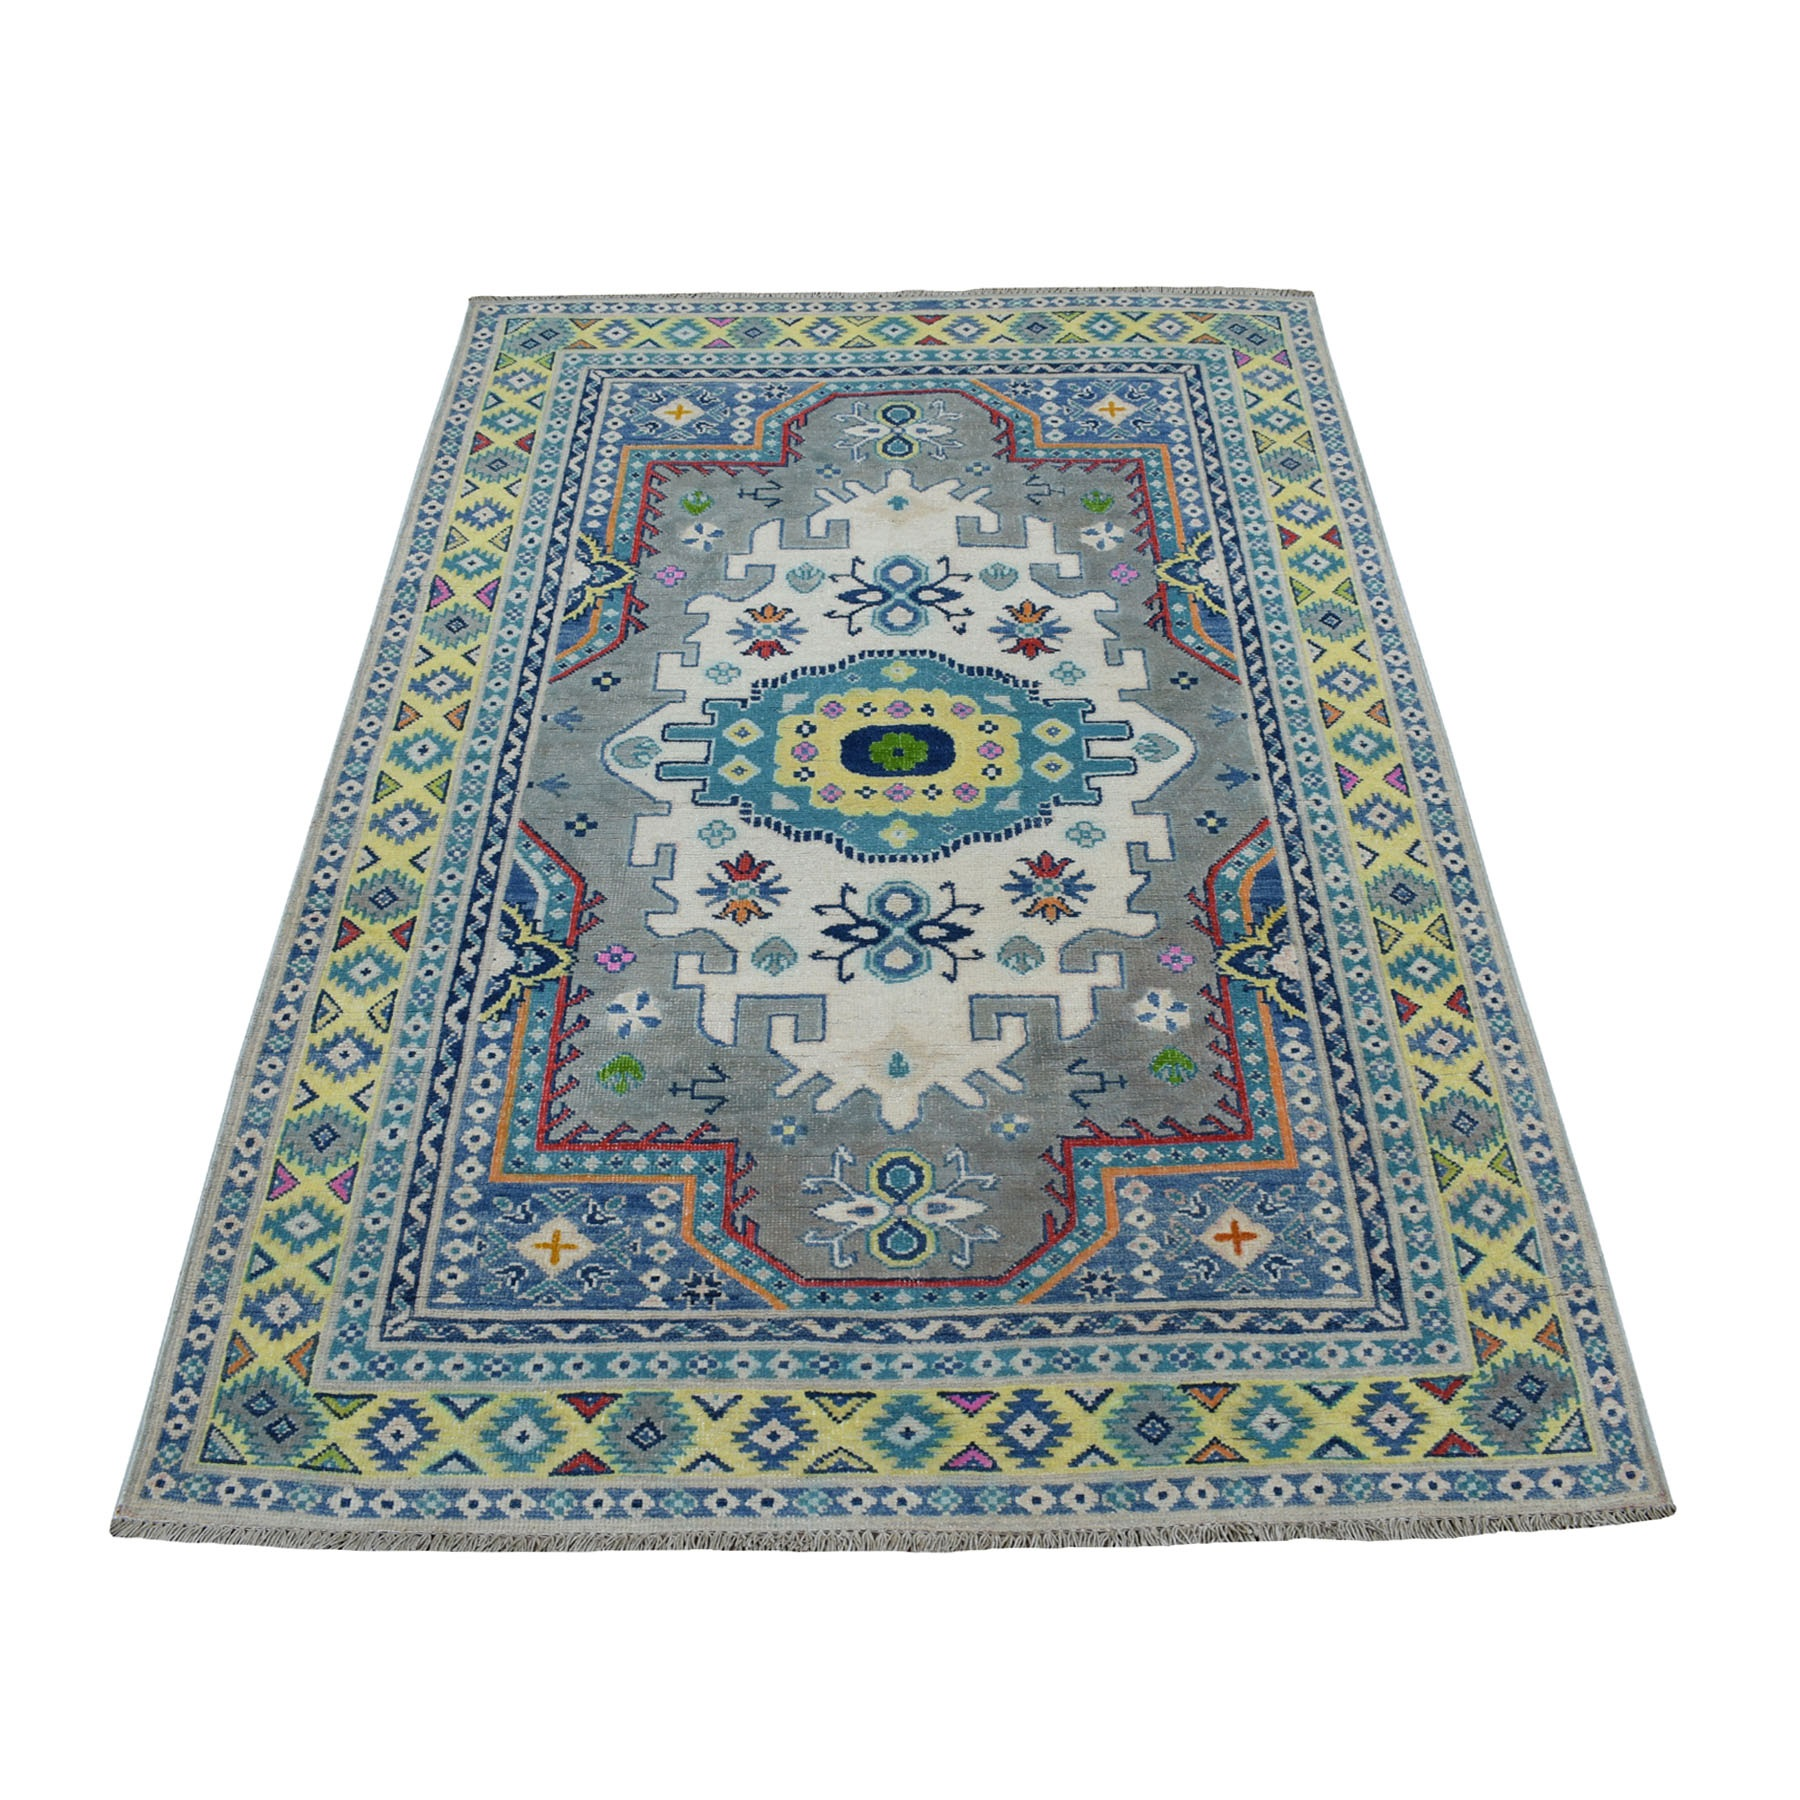 4'x6' Colorful Gray Fusion Kazak Pure Wool Geometric Design Hand Knotted Oriental Rug 53519